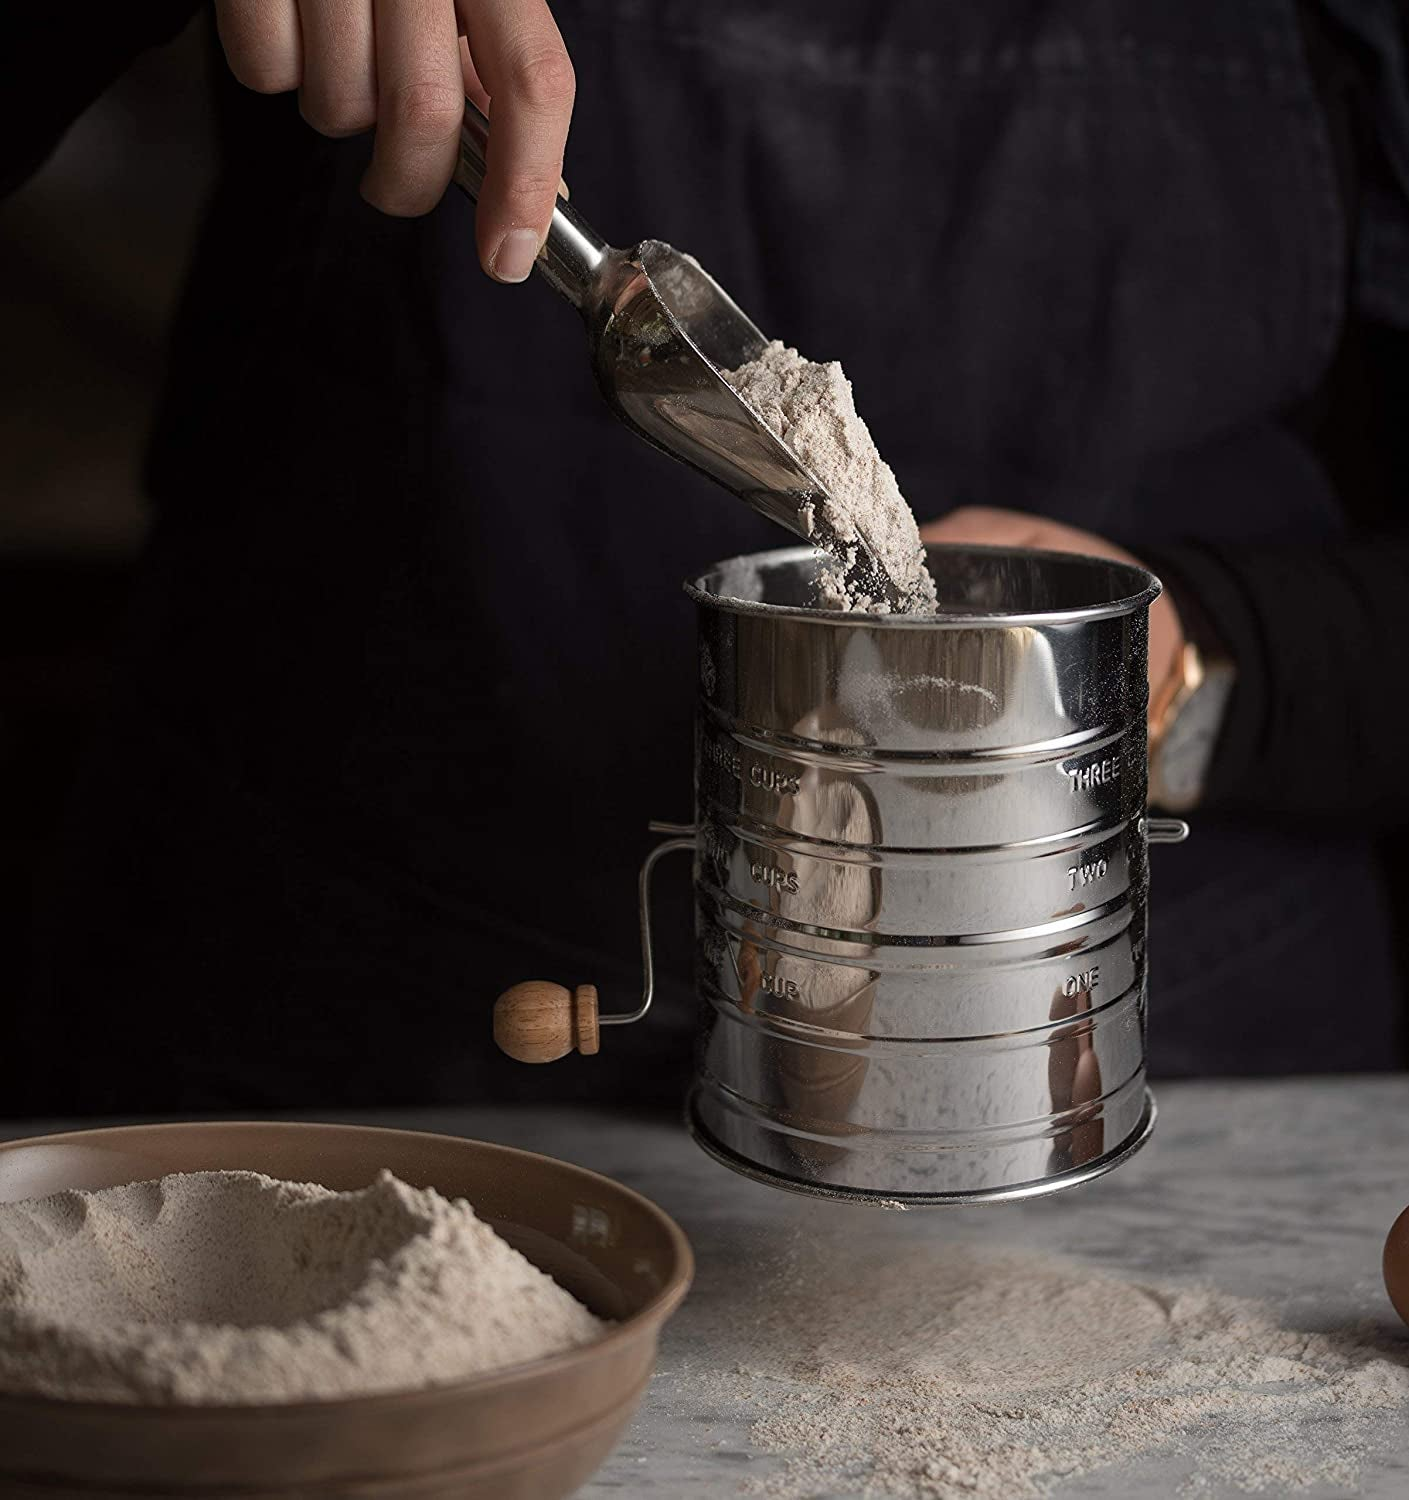 a model scooping flour into the flour sifter